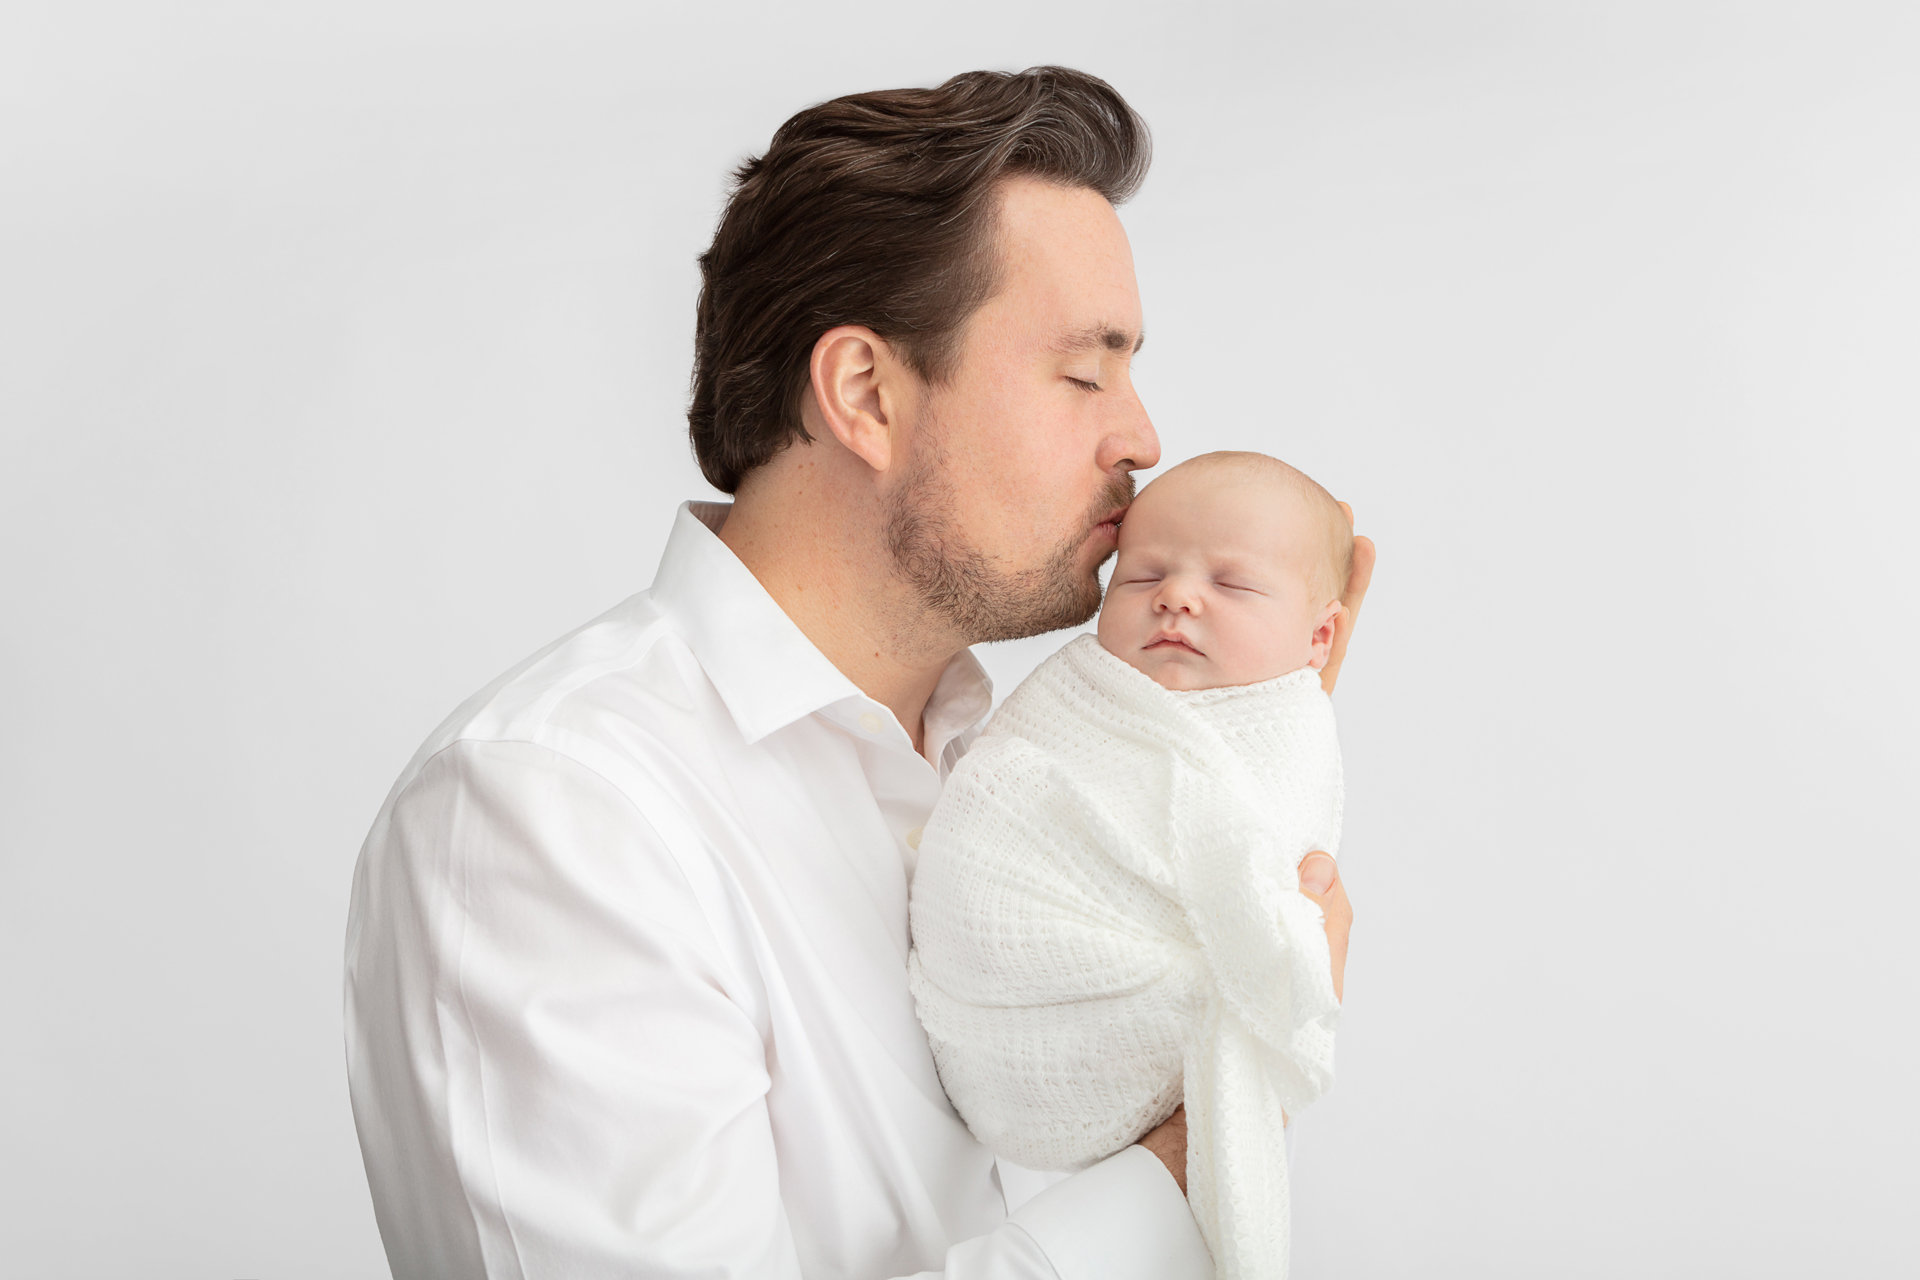 new dad in white shirt holding his son up and kissing his head; baby boy wrapped in white